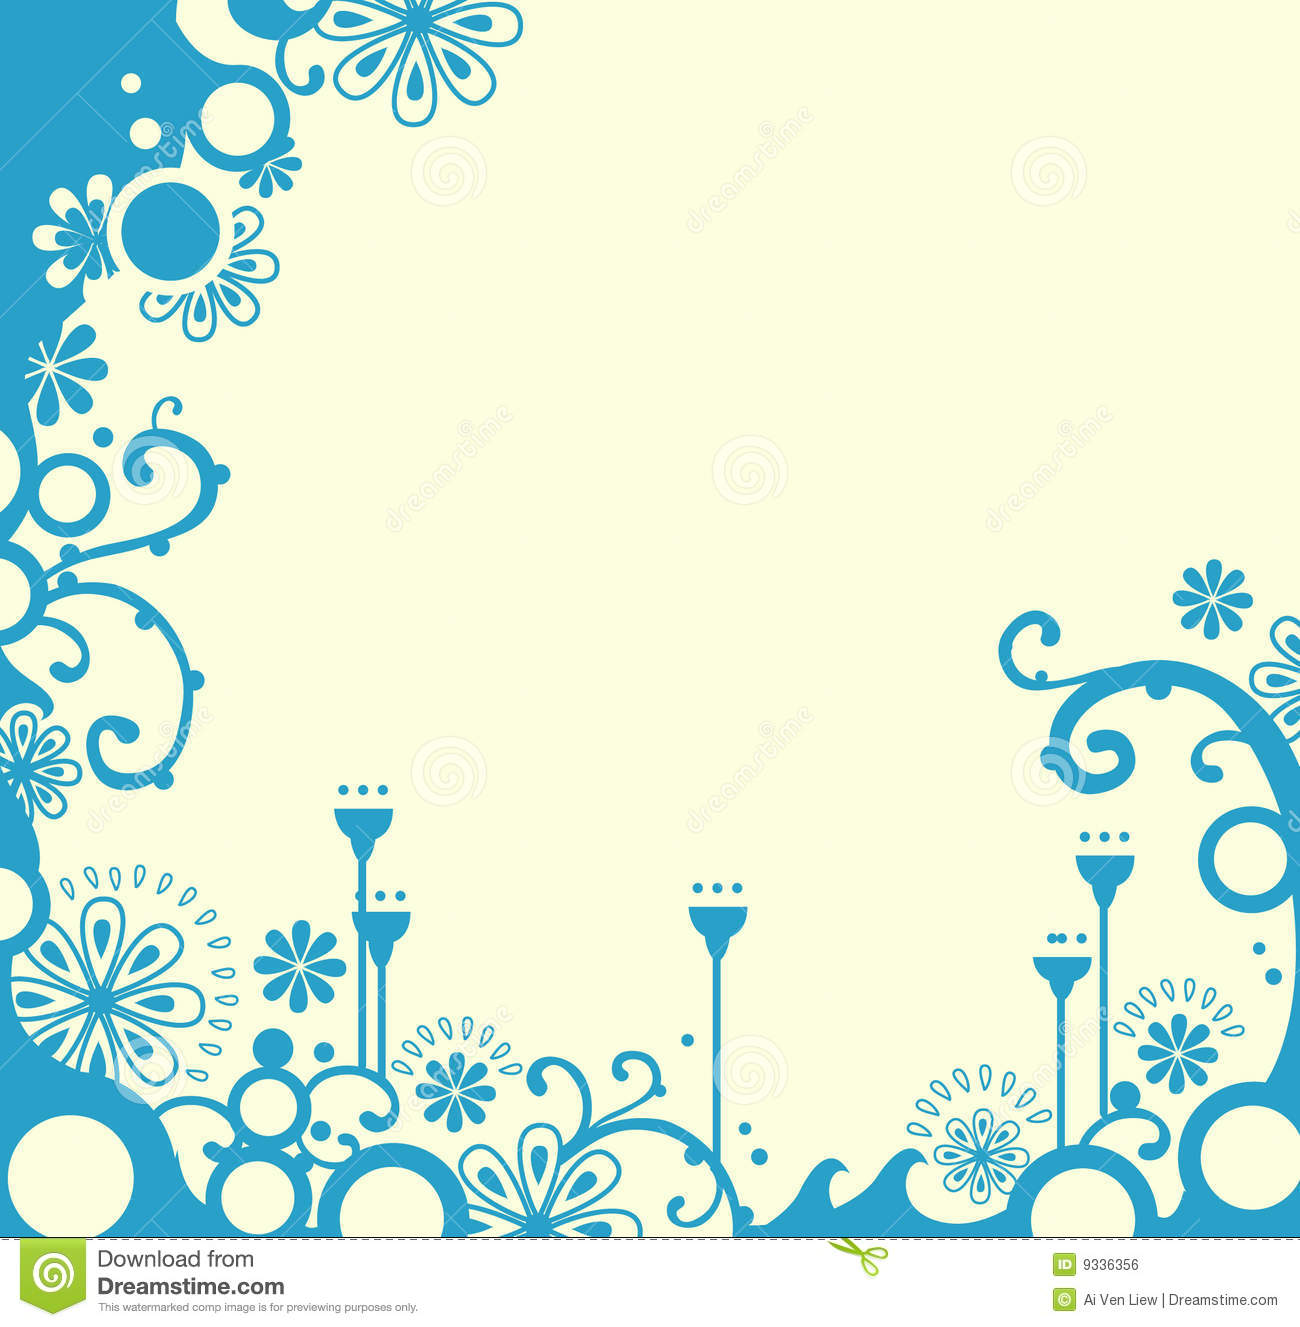 Beautiful Designs beautiful victorian border design royalty free stock image - image